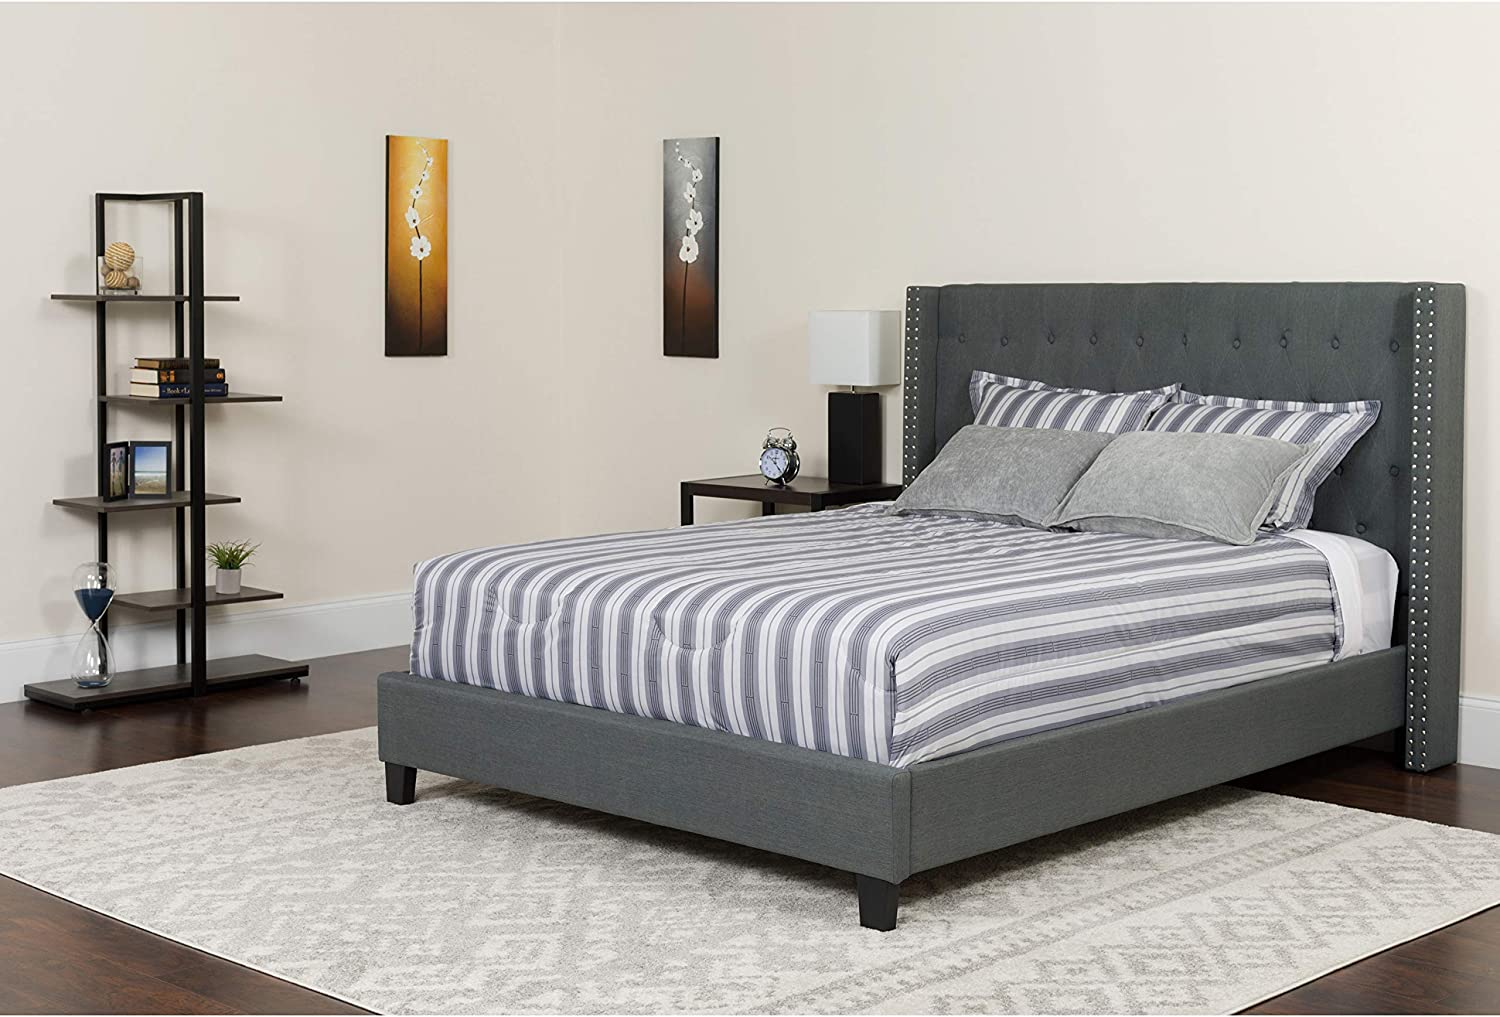 Flash Furniture Riverdale King Size Tufted Upholstered Platform Bed in Dark Gray Fabric